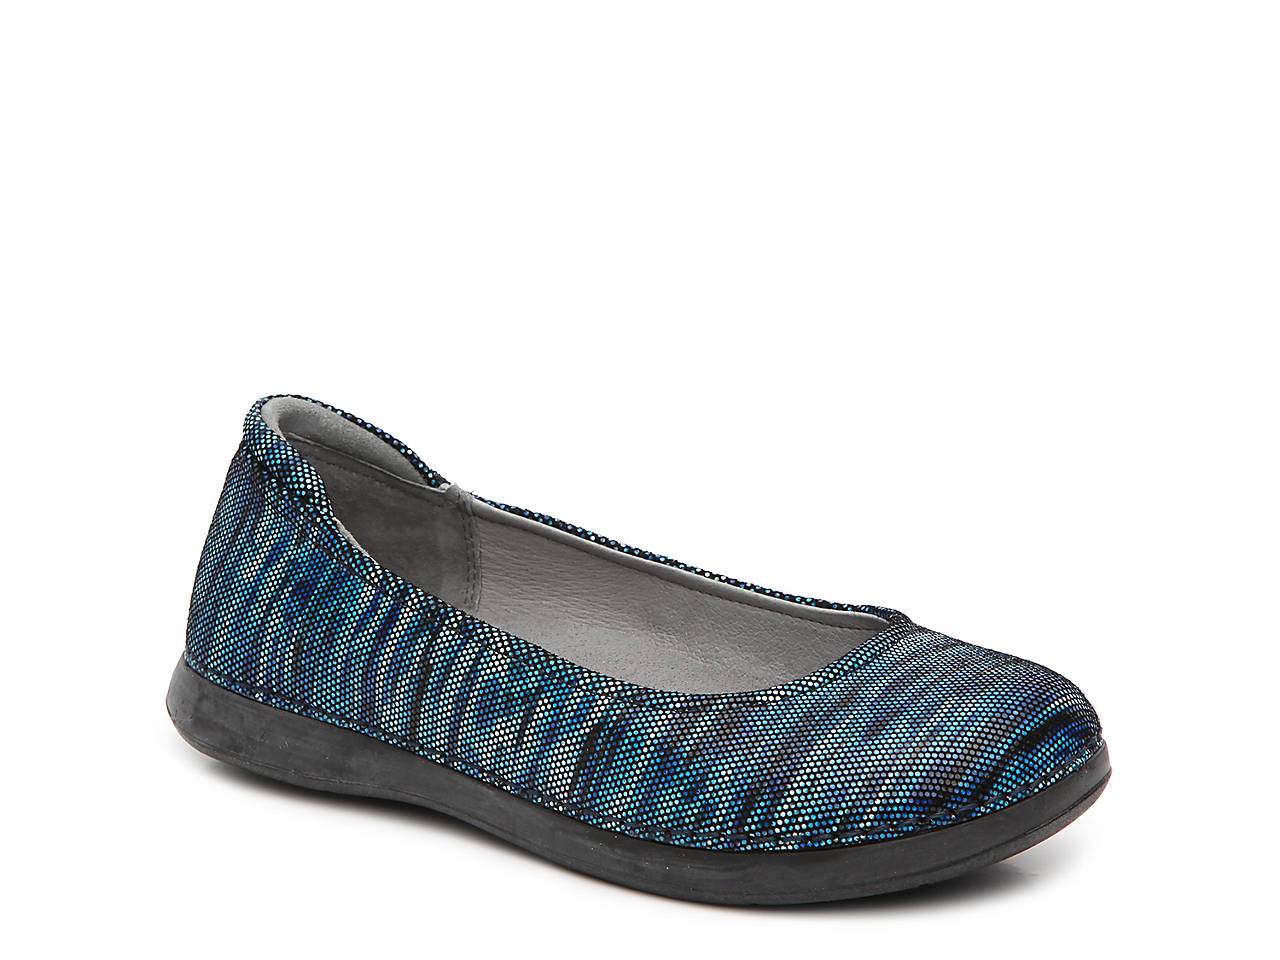 Alegria Leather Slip-on Flats - Petal discount recommend tumblr online 2015 cheap online clearance shop for 545FUb